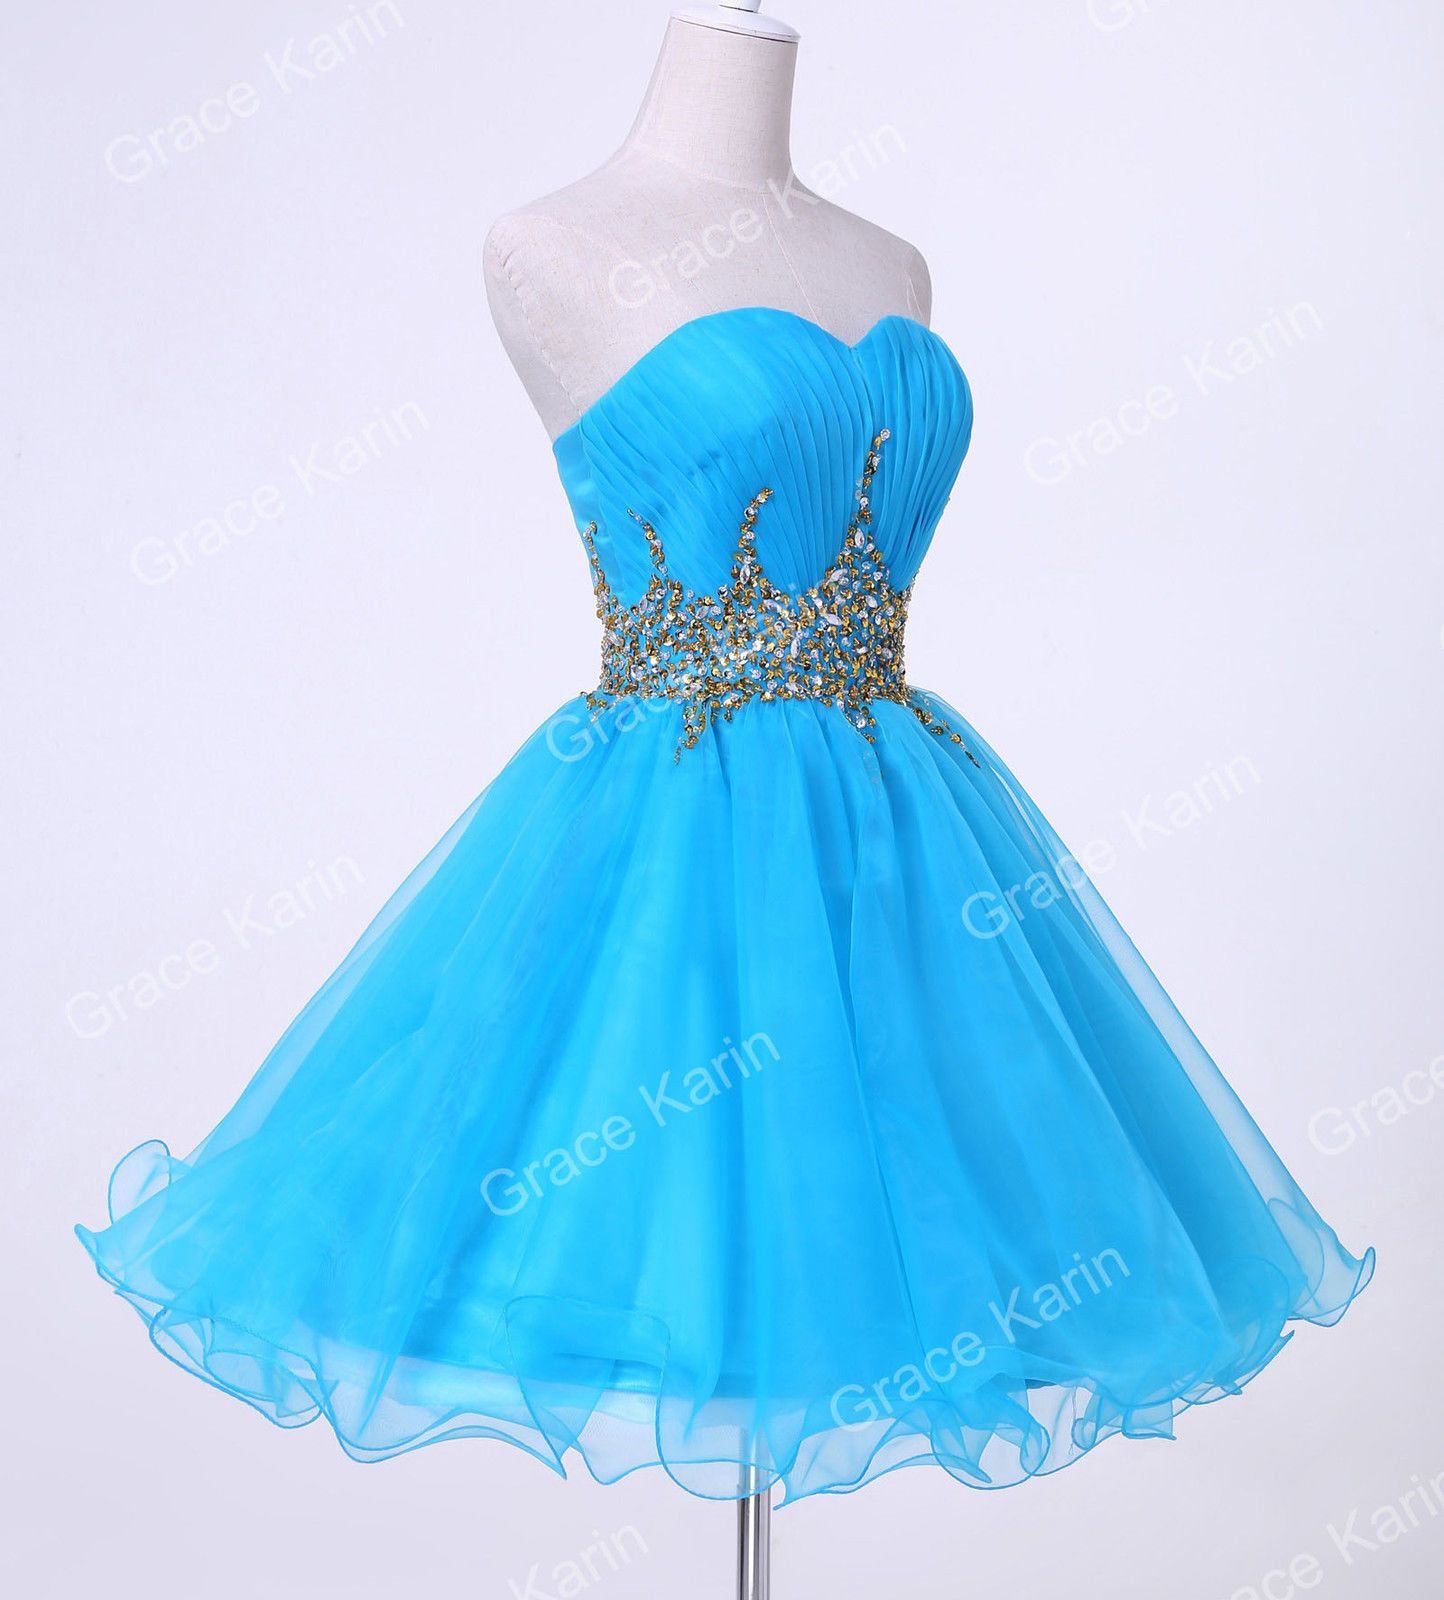 Blue women strapless voile ball cocktail evening party mini prom